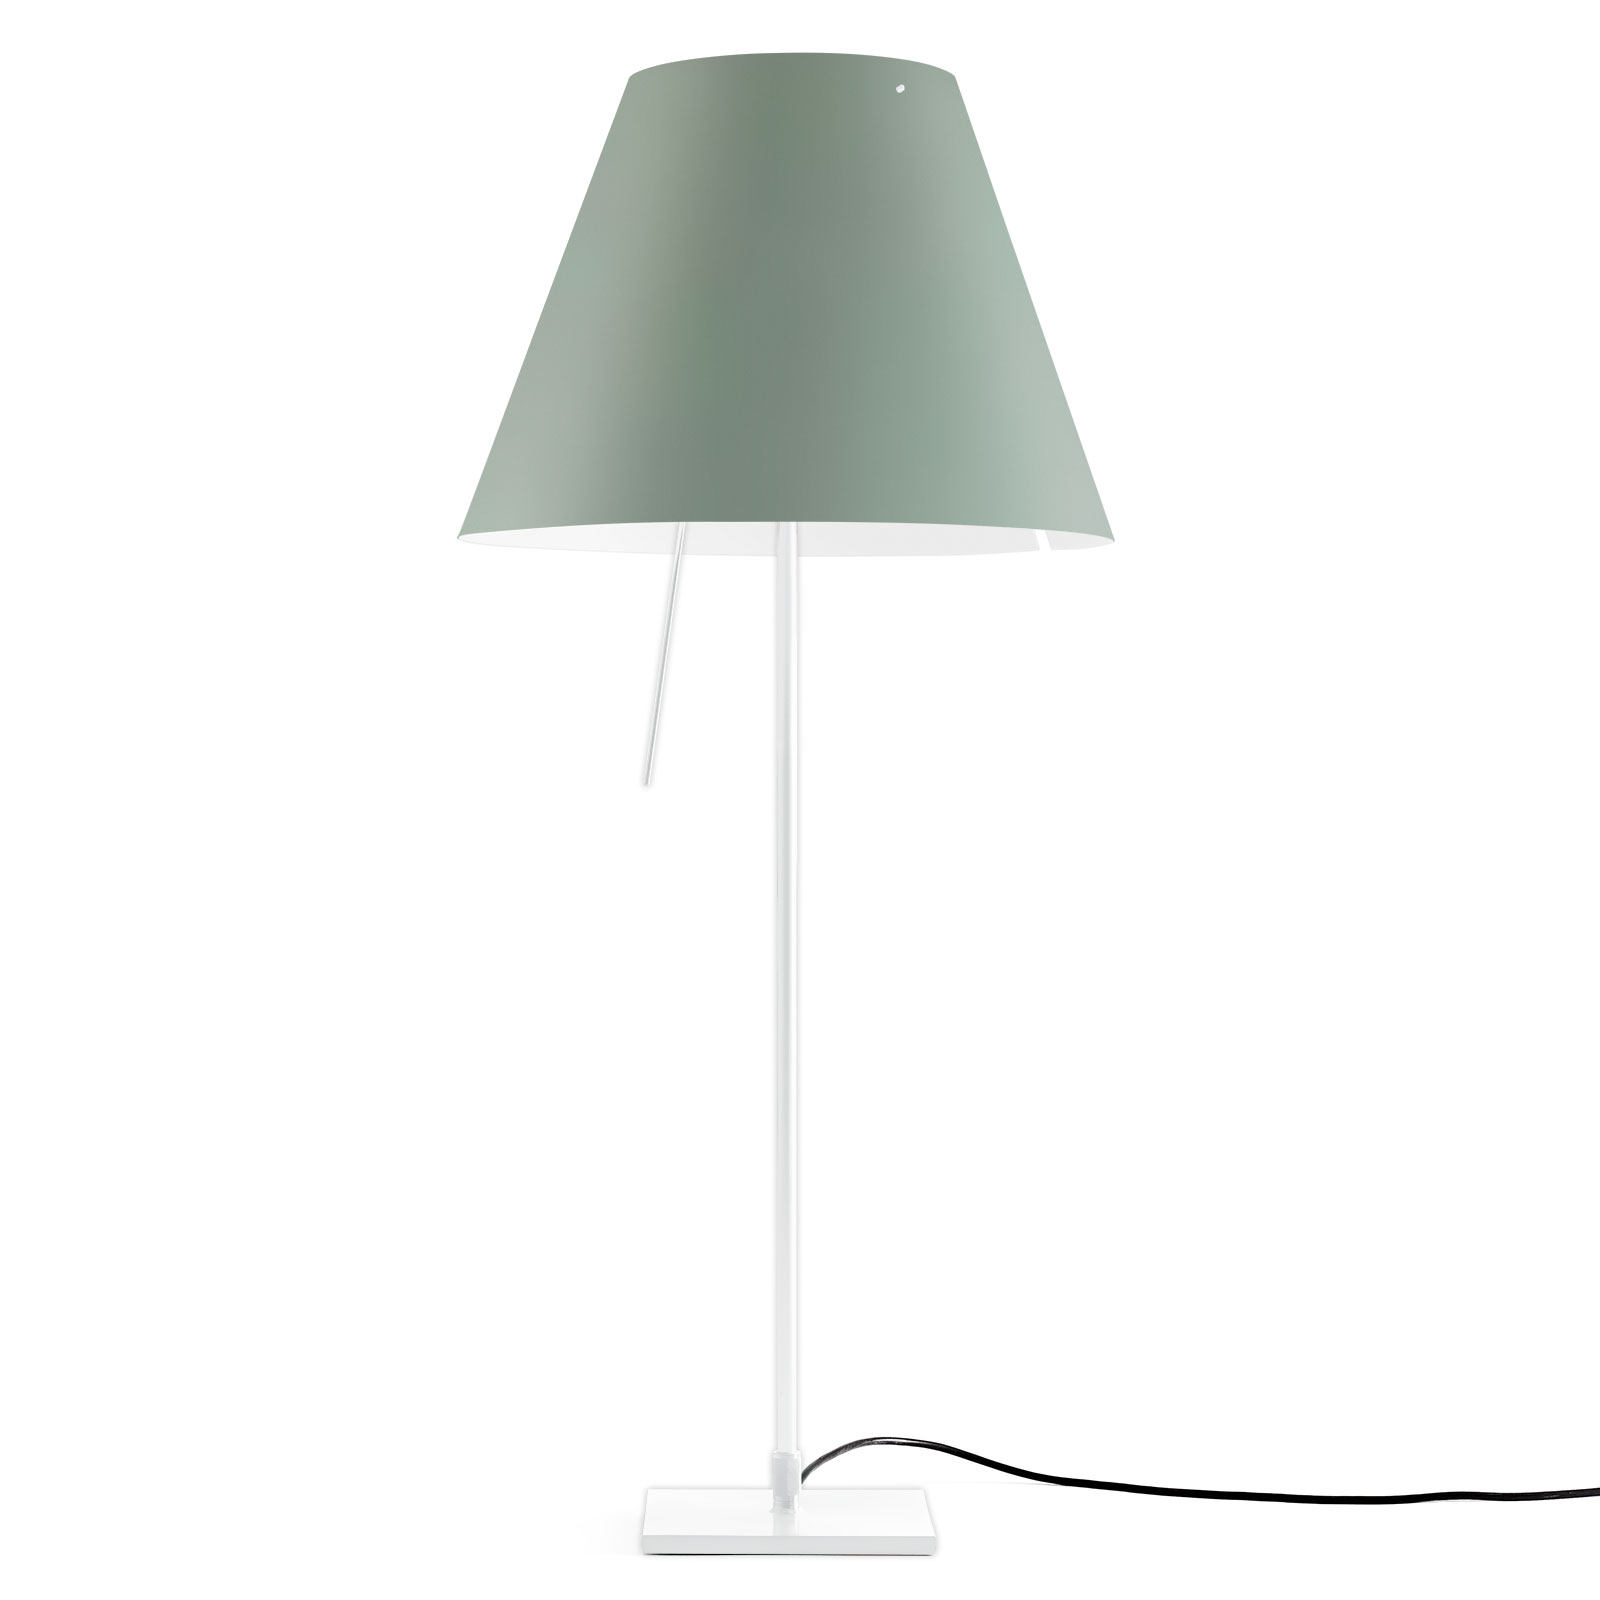 Luceplan Costanza tafellamp D13if wit/groen